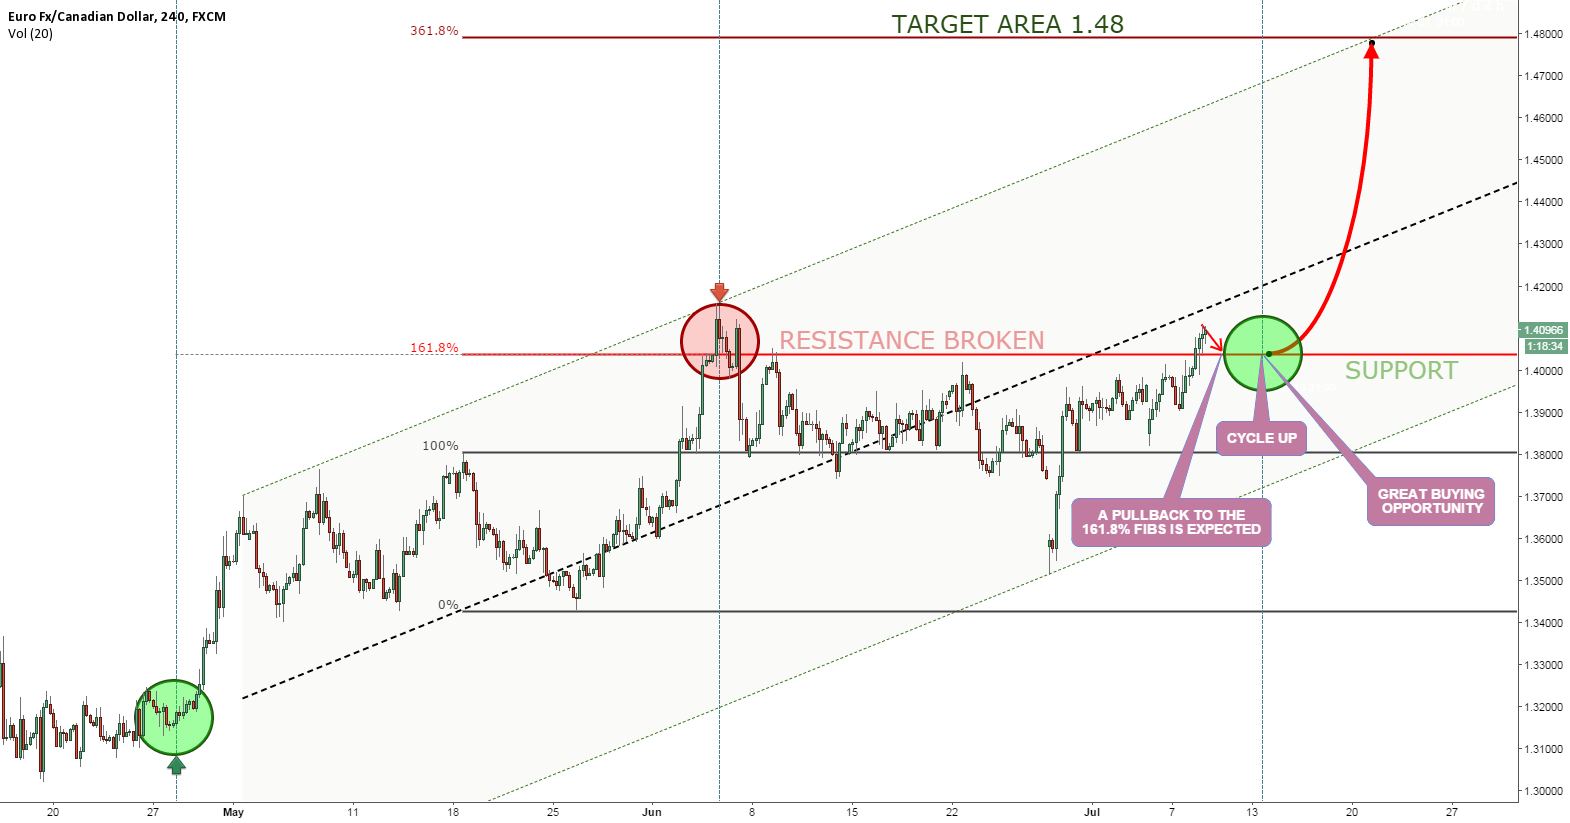 EURCAD PREPARING FOR A RALLY